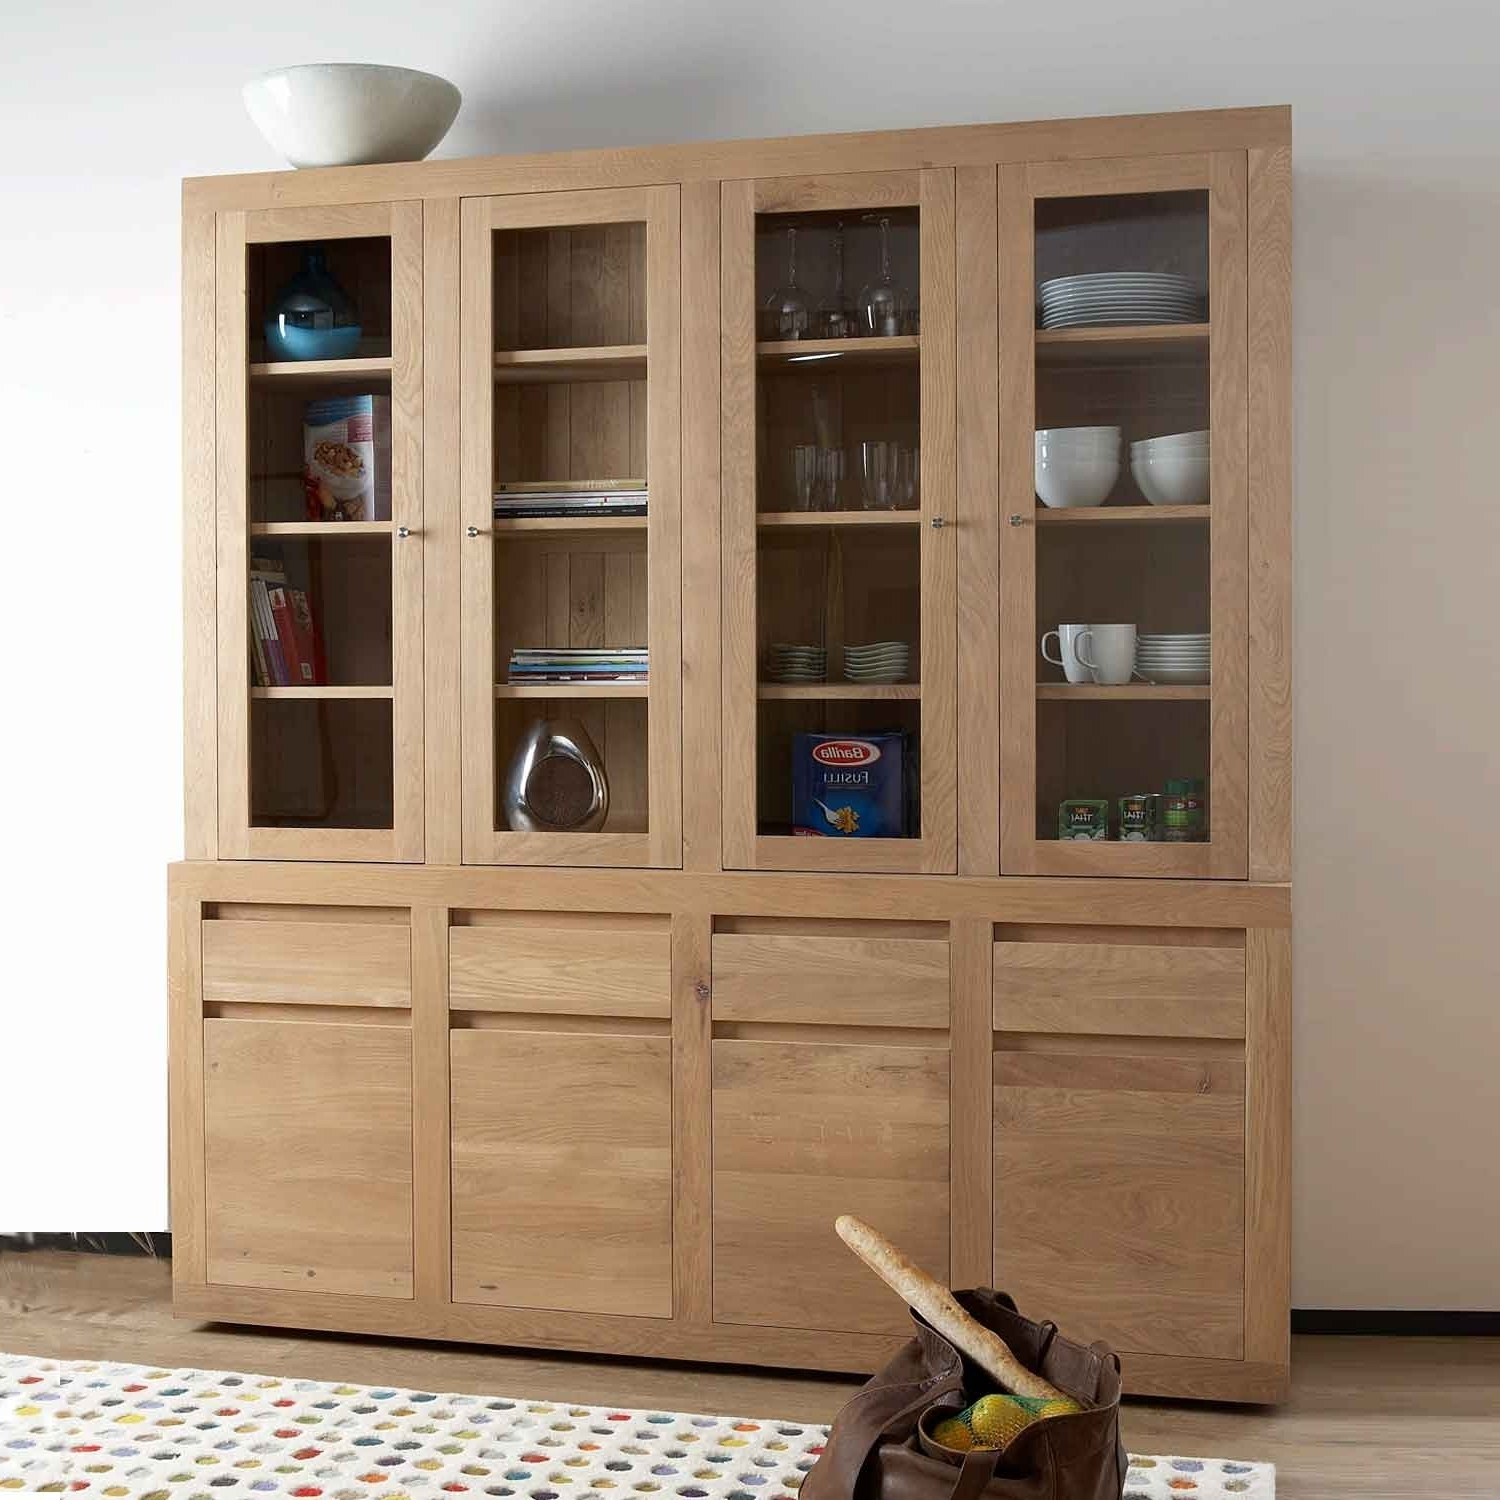 room utility storage great home new cupboard systems shelving the as shelved cupboards cloak hall fully designing